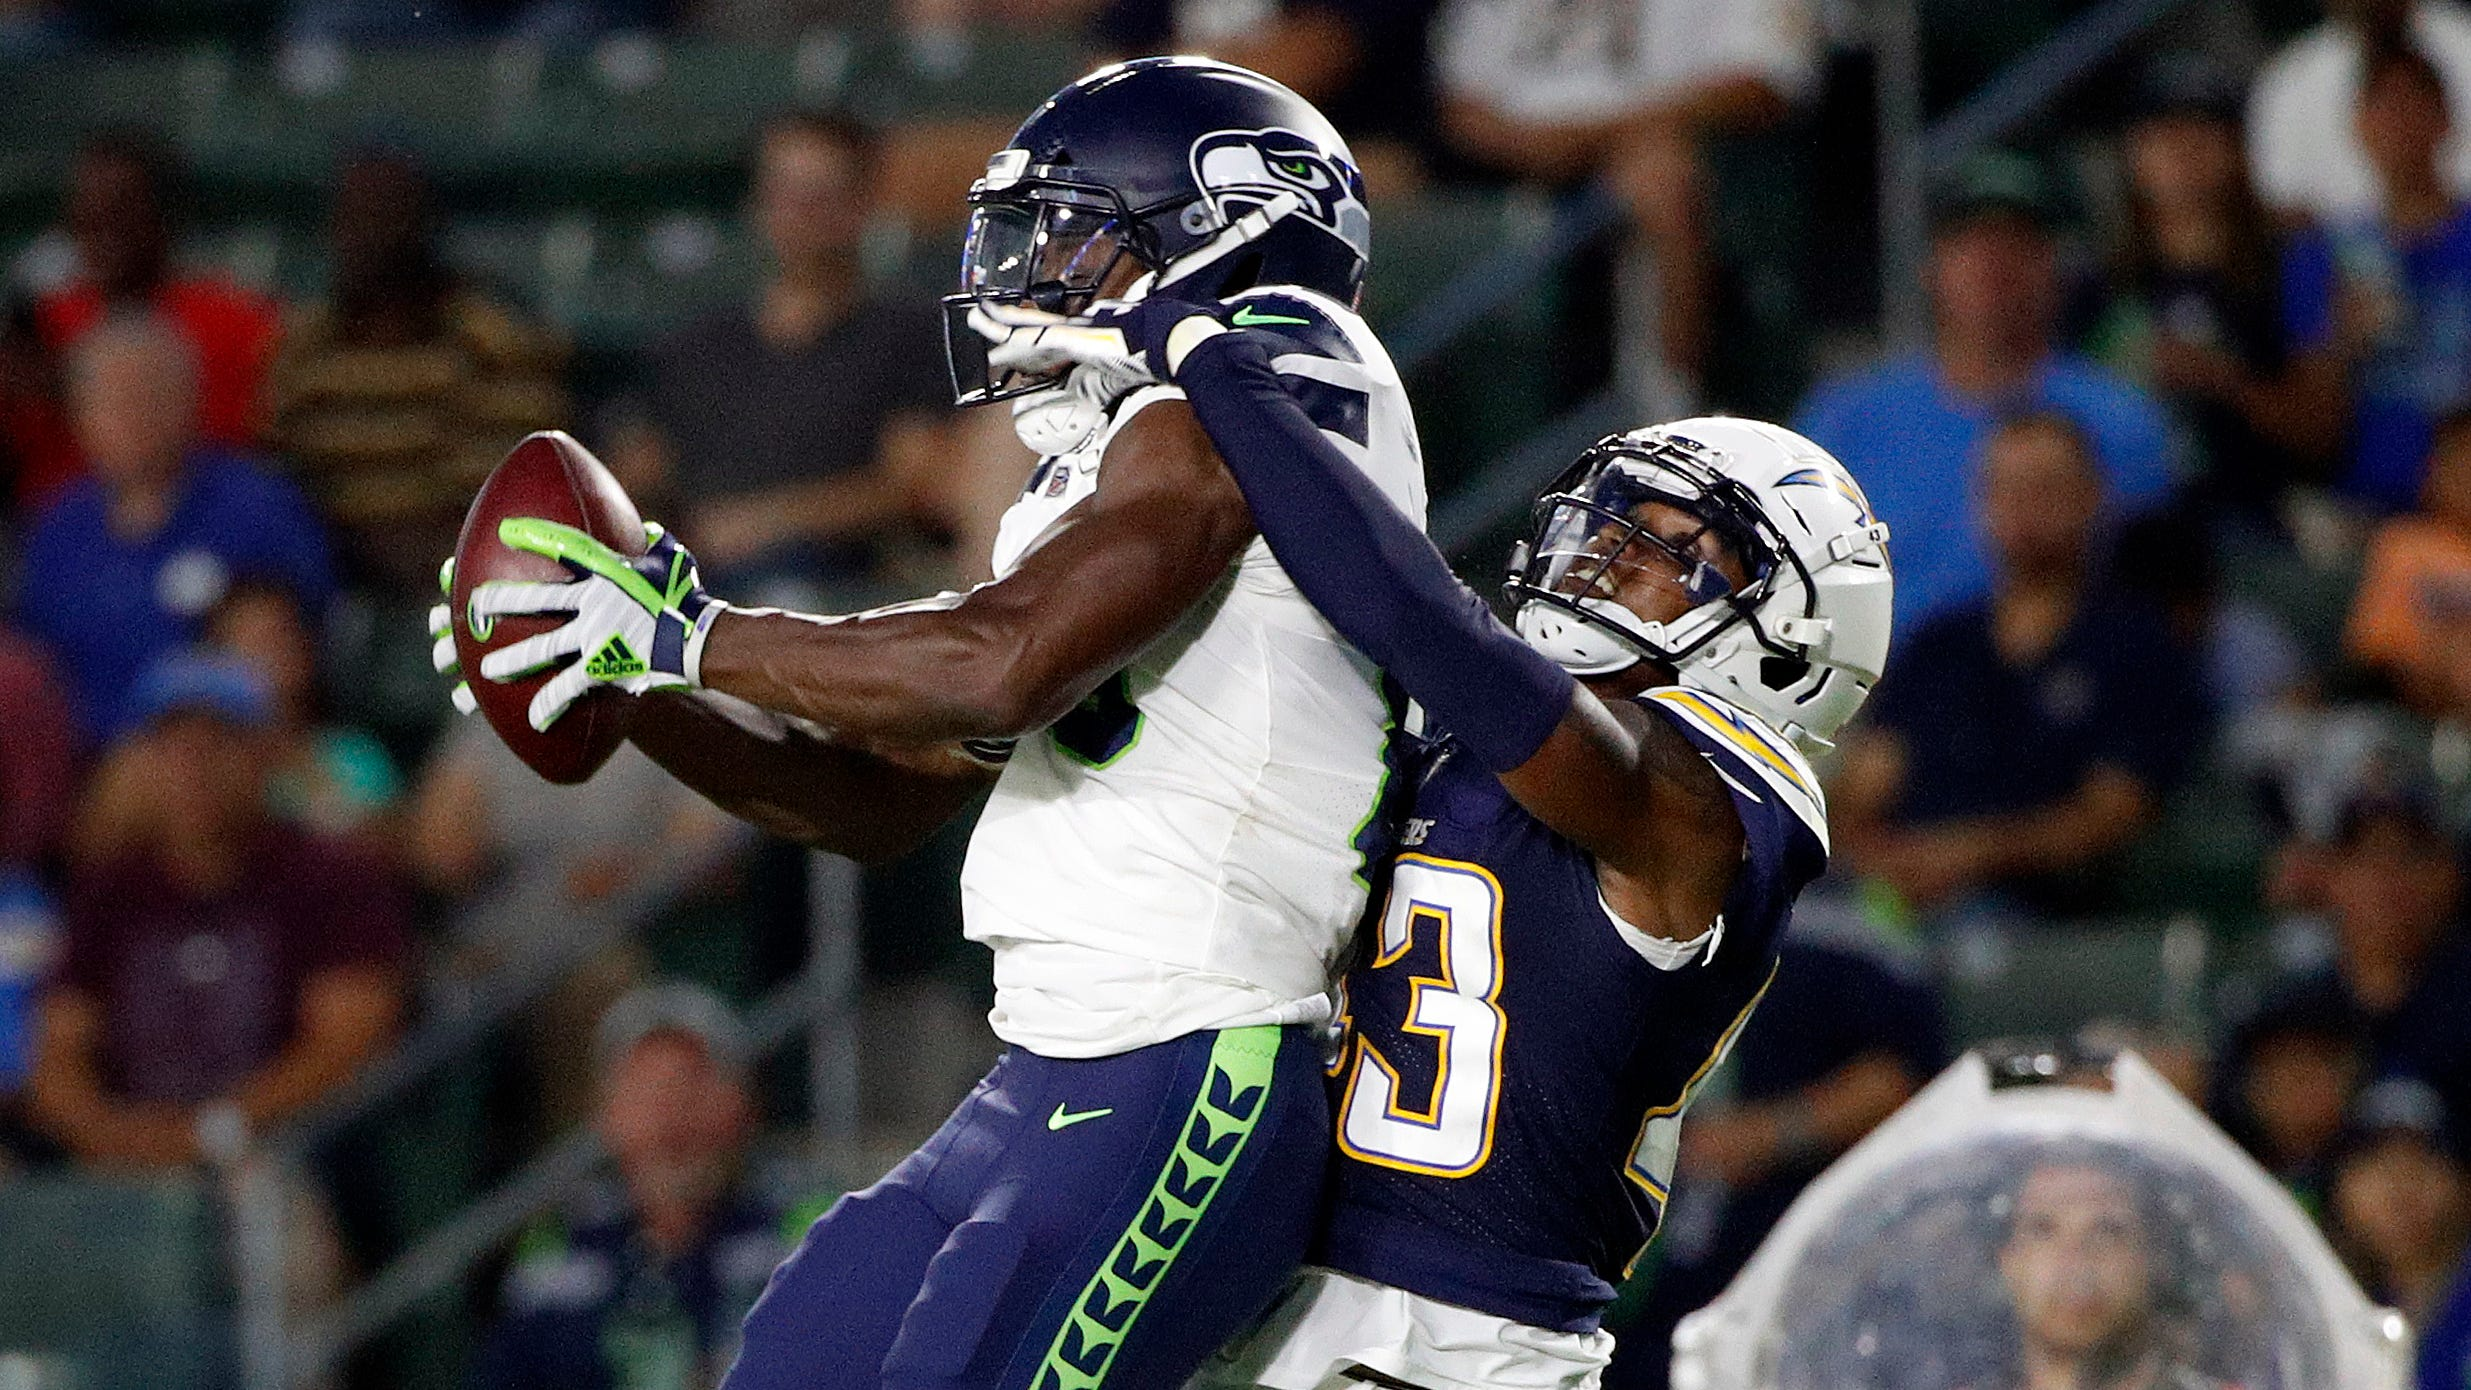 Seahawks wide receiver David Moore was impressive during Saturday's game against the Chargers, but then so was Kasen Williams last year.